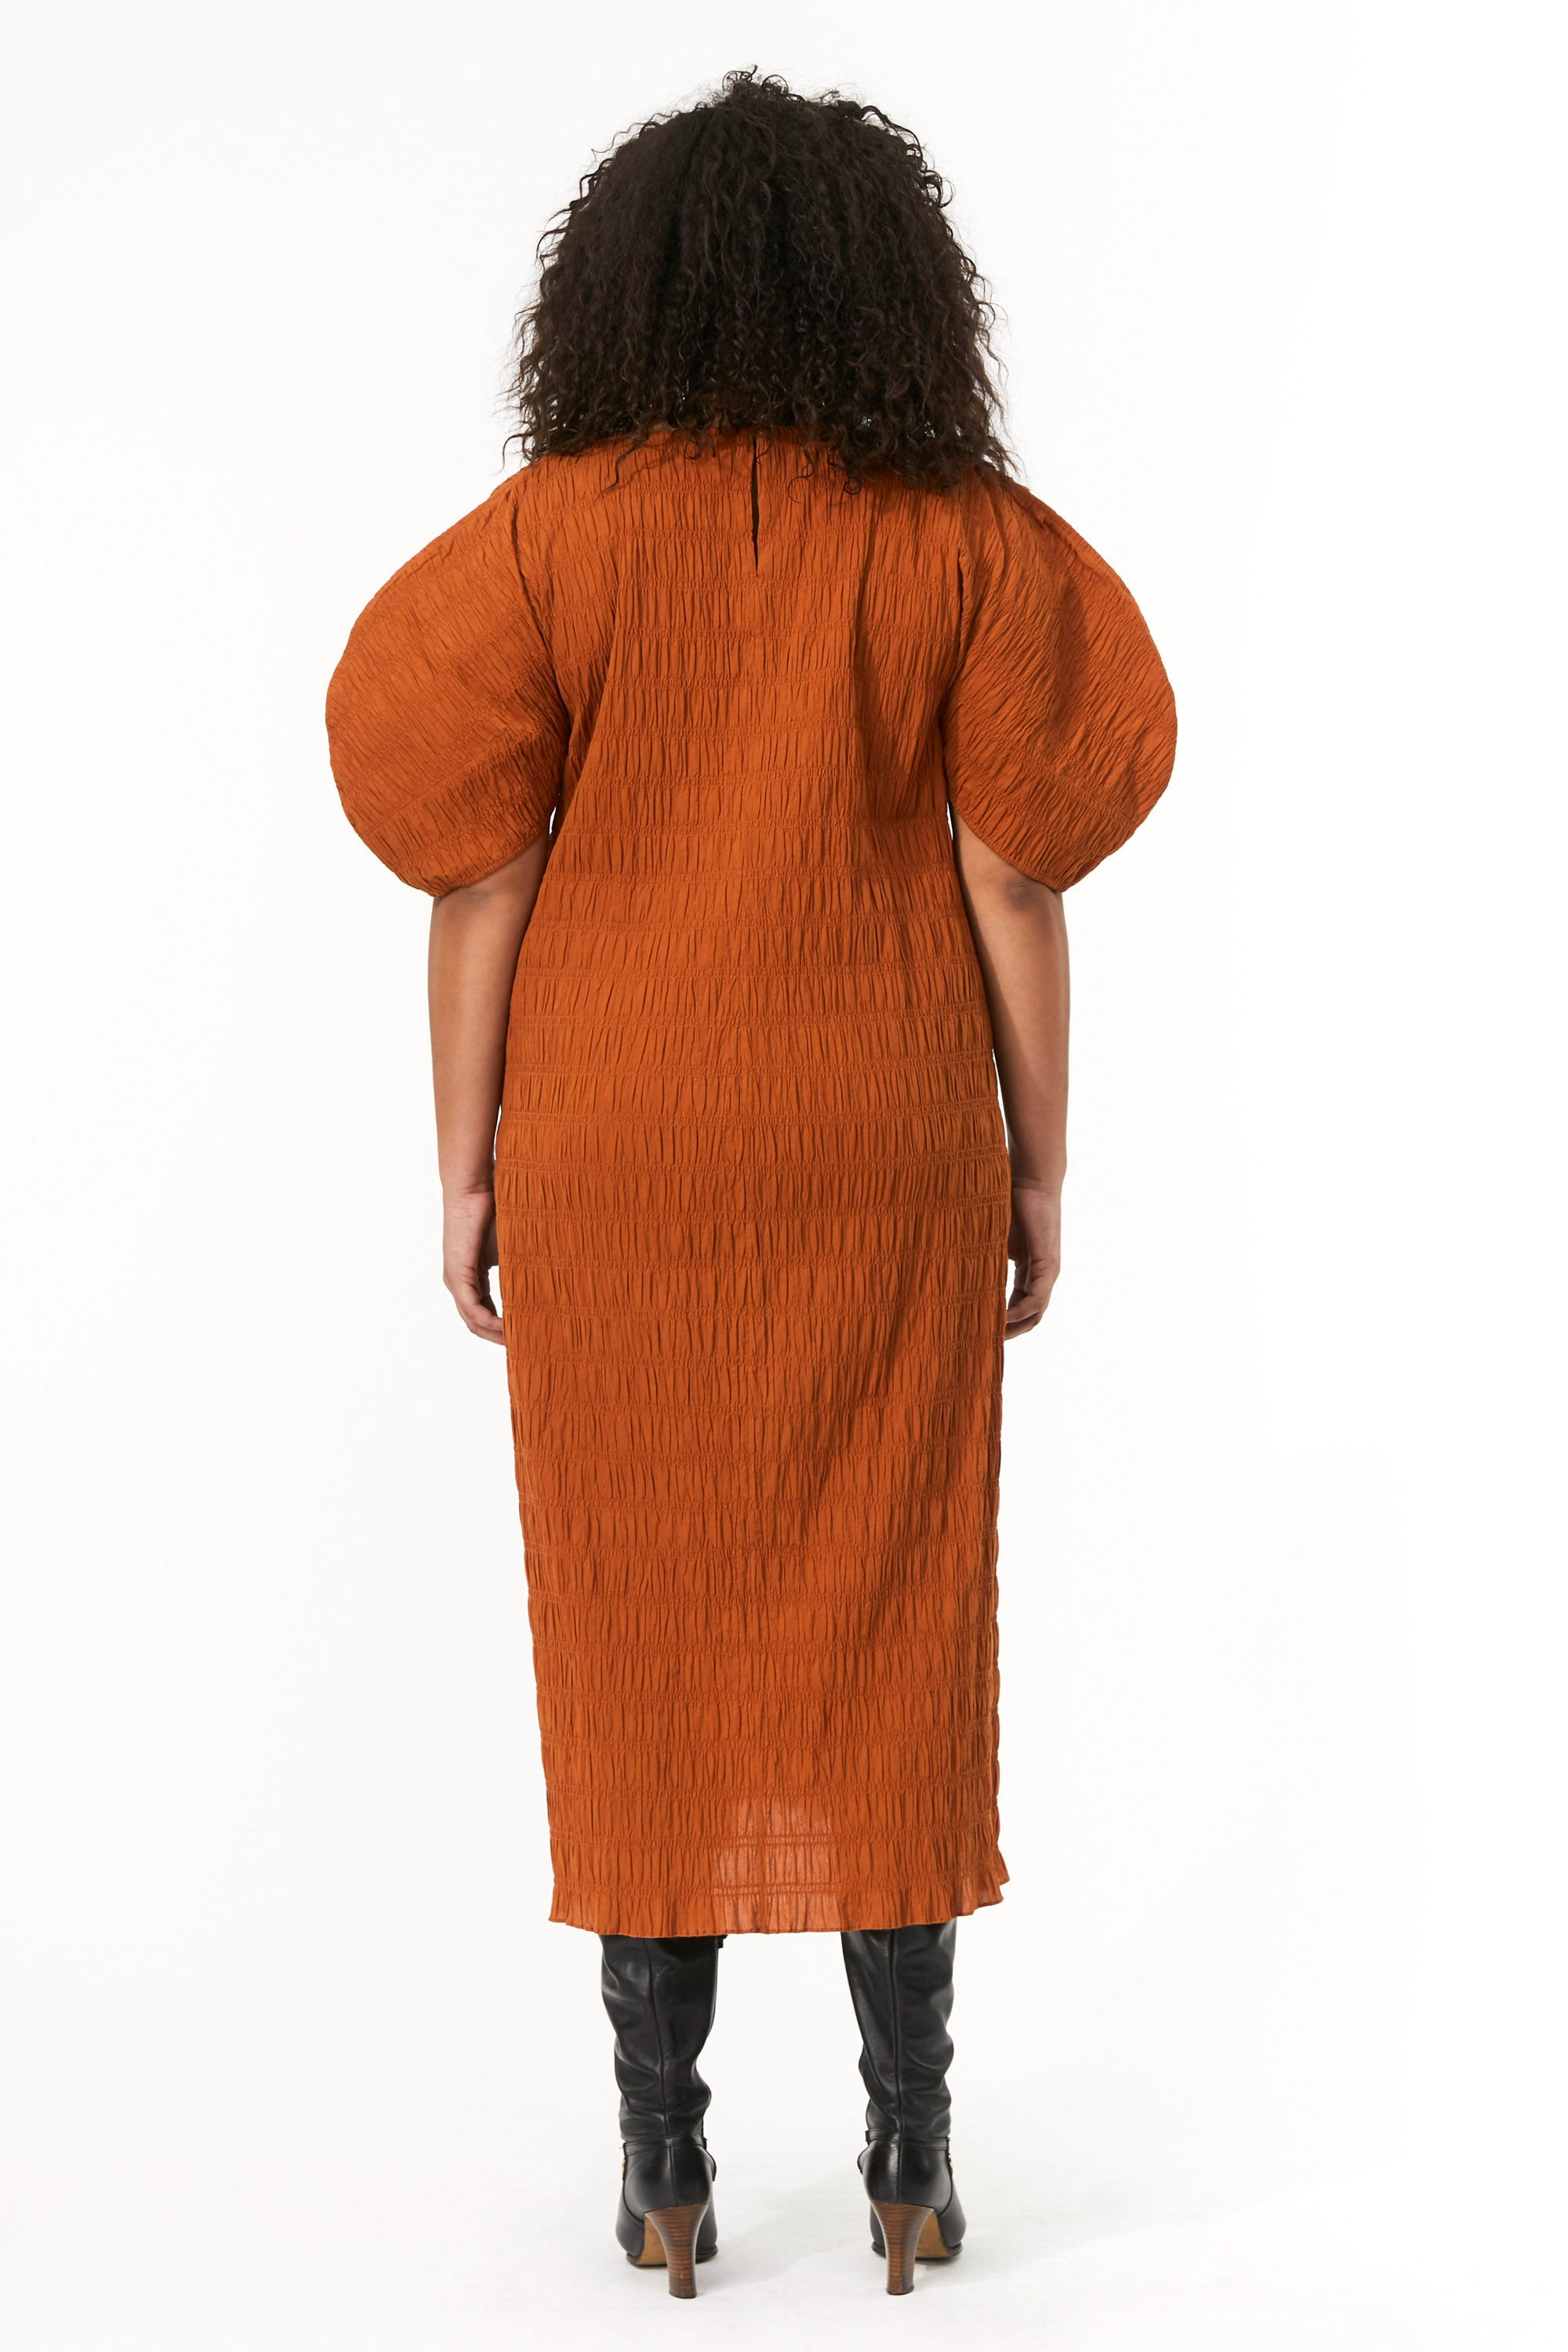 Mara Hoffman Extended Brown Aranza dress in organic cotton (back)